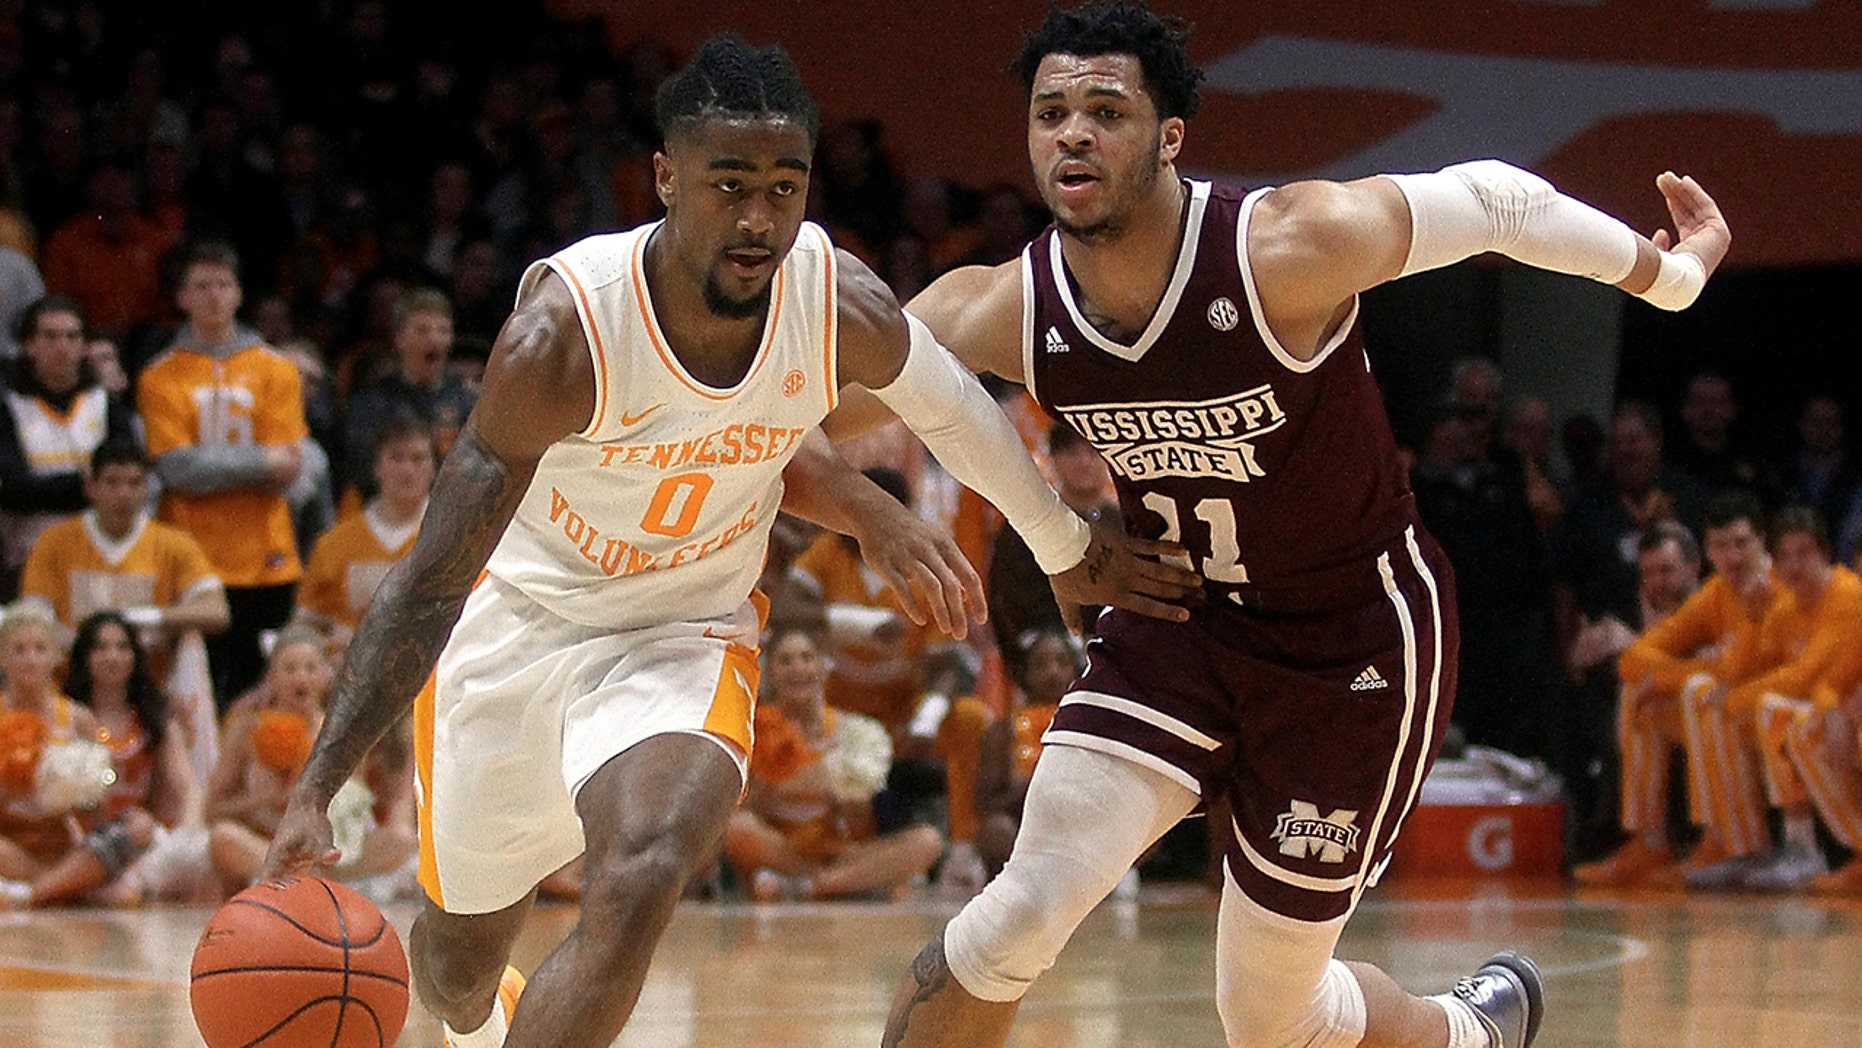 Tennessee's Jordan Bone brings the ball up while defended by Mississippi State's Quinndary Weatherspoon during an NCAA college basketball game Tuesday, March 5, 2019, in Knoxville, Tenn.